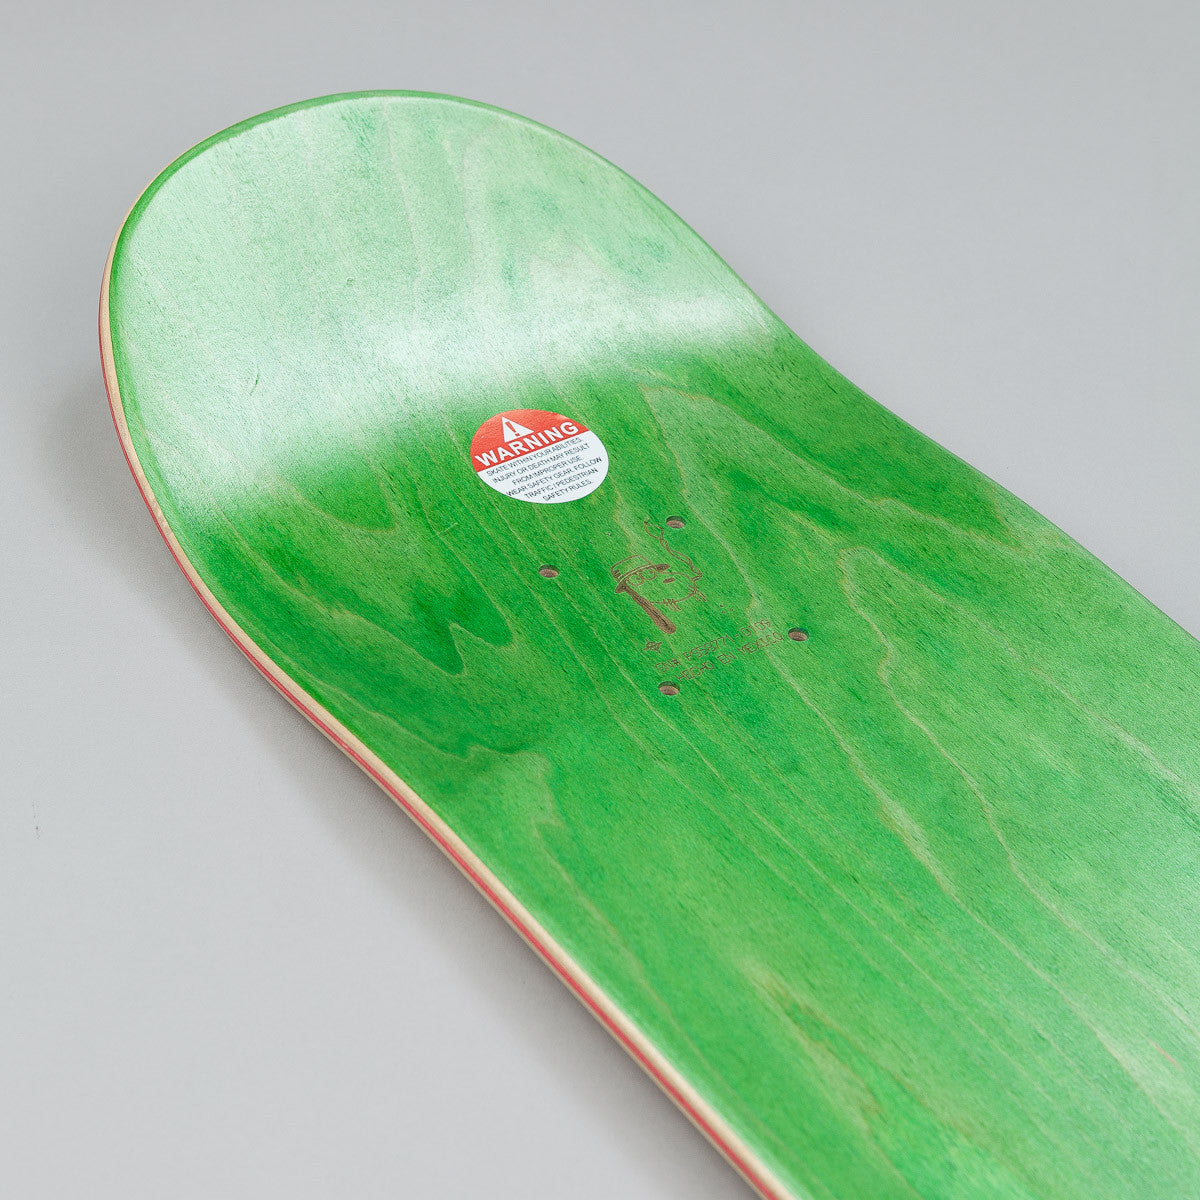 Fucking Awesome Gino Iannucci Class Photo Deck - 8.25""